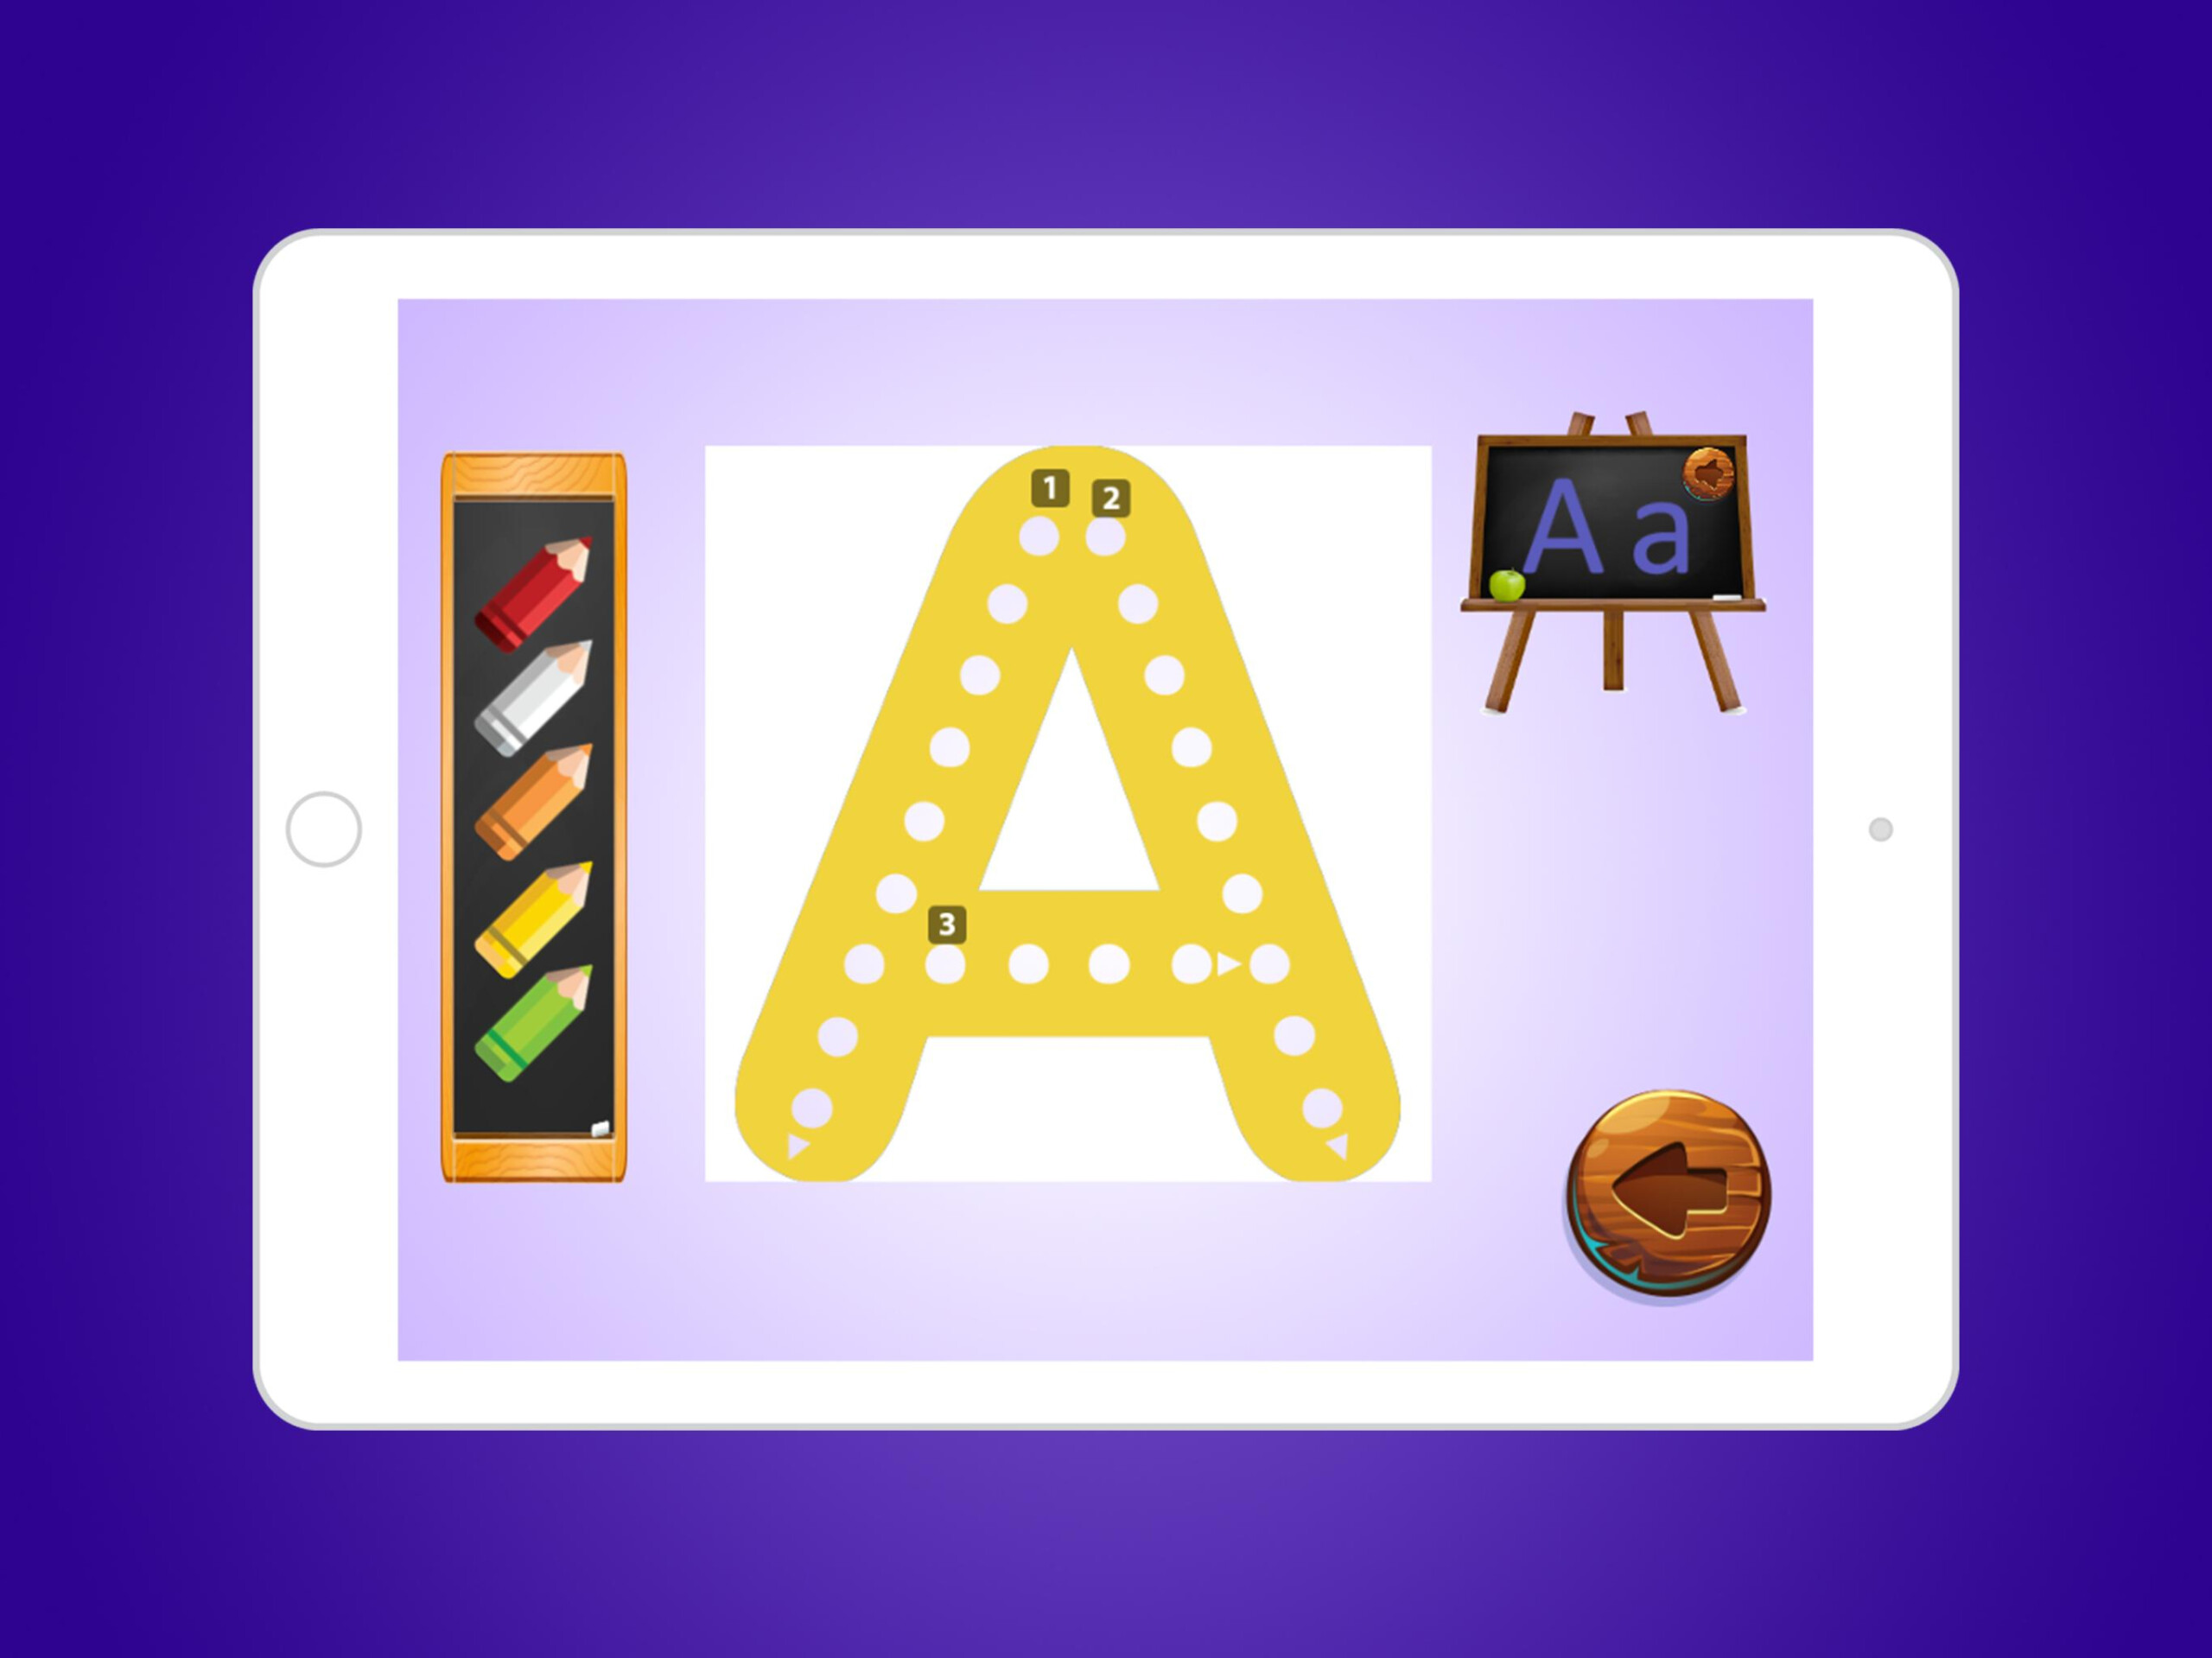 Abc Tracing Games For Kids For Android - Apk Download